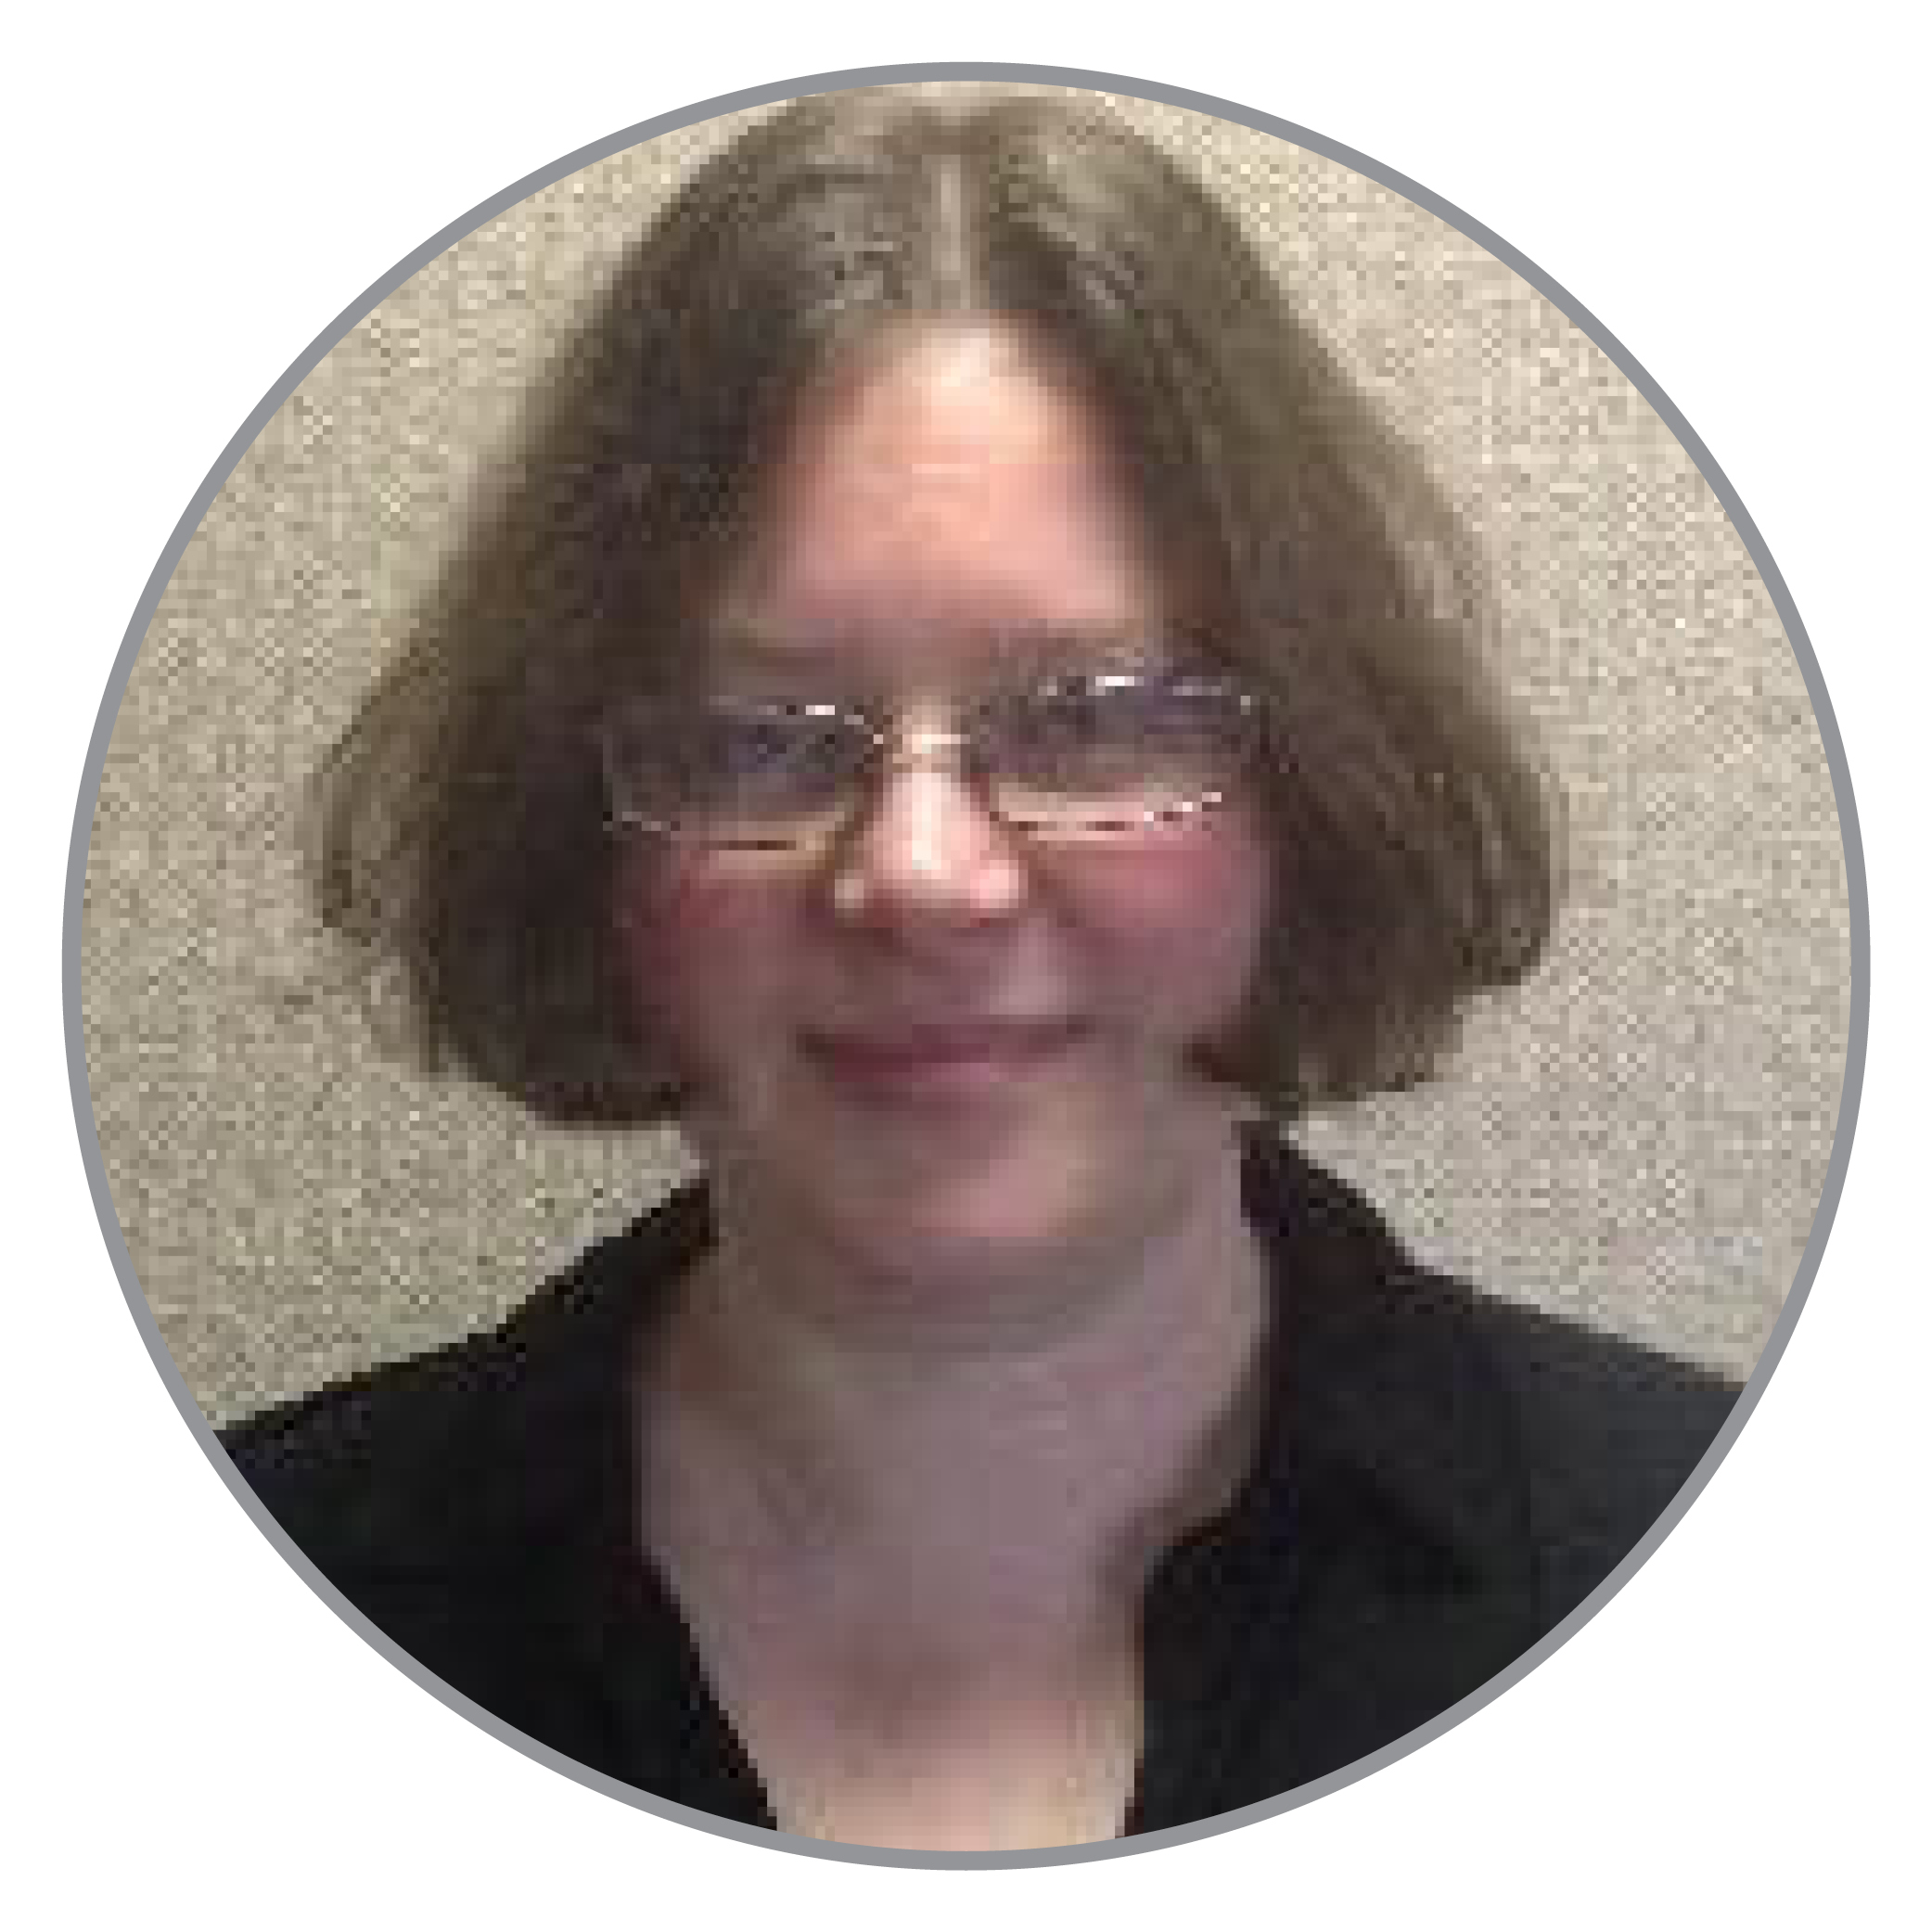 Philippa Butler - Research officer - Centre member